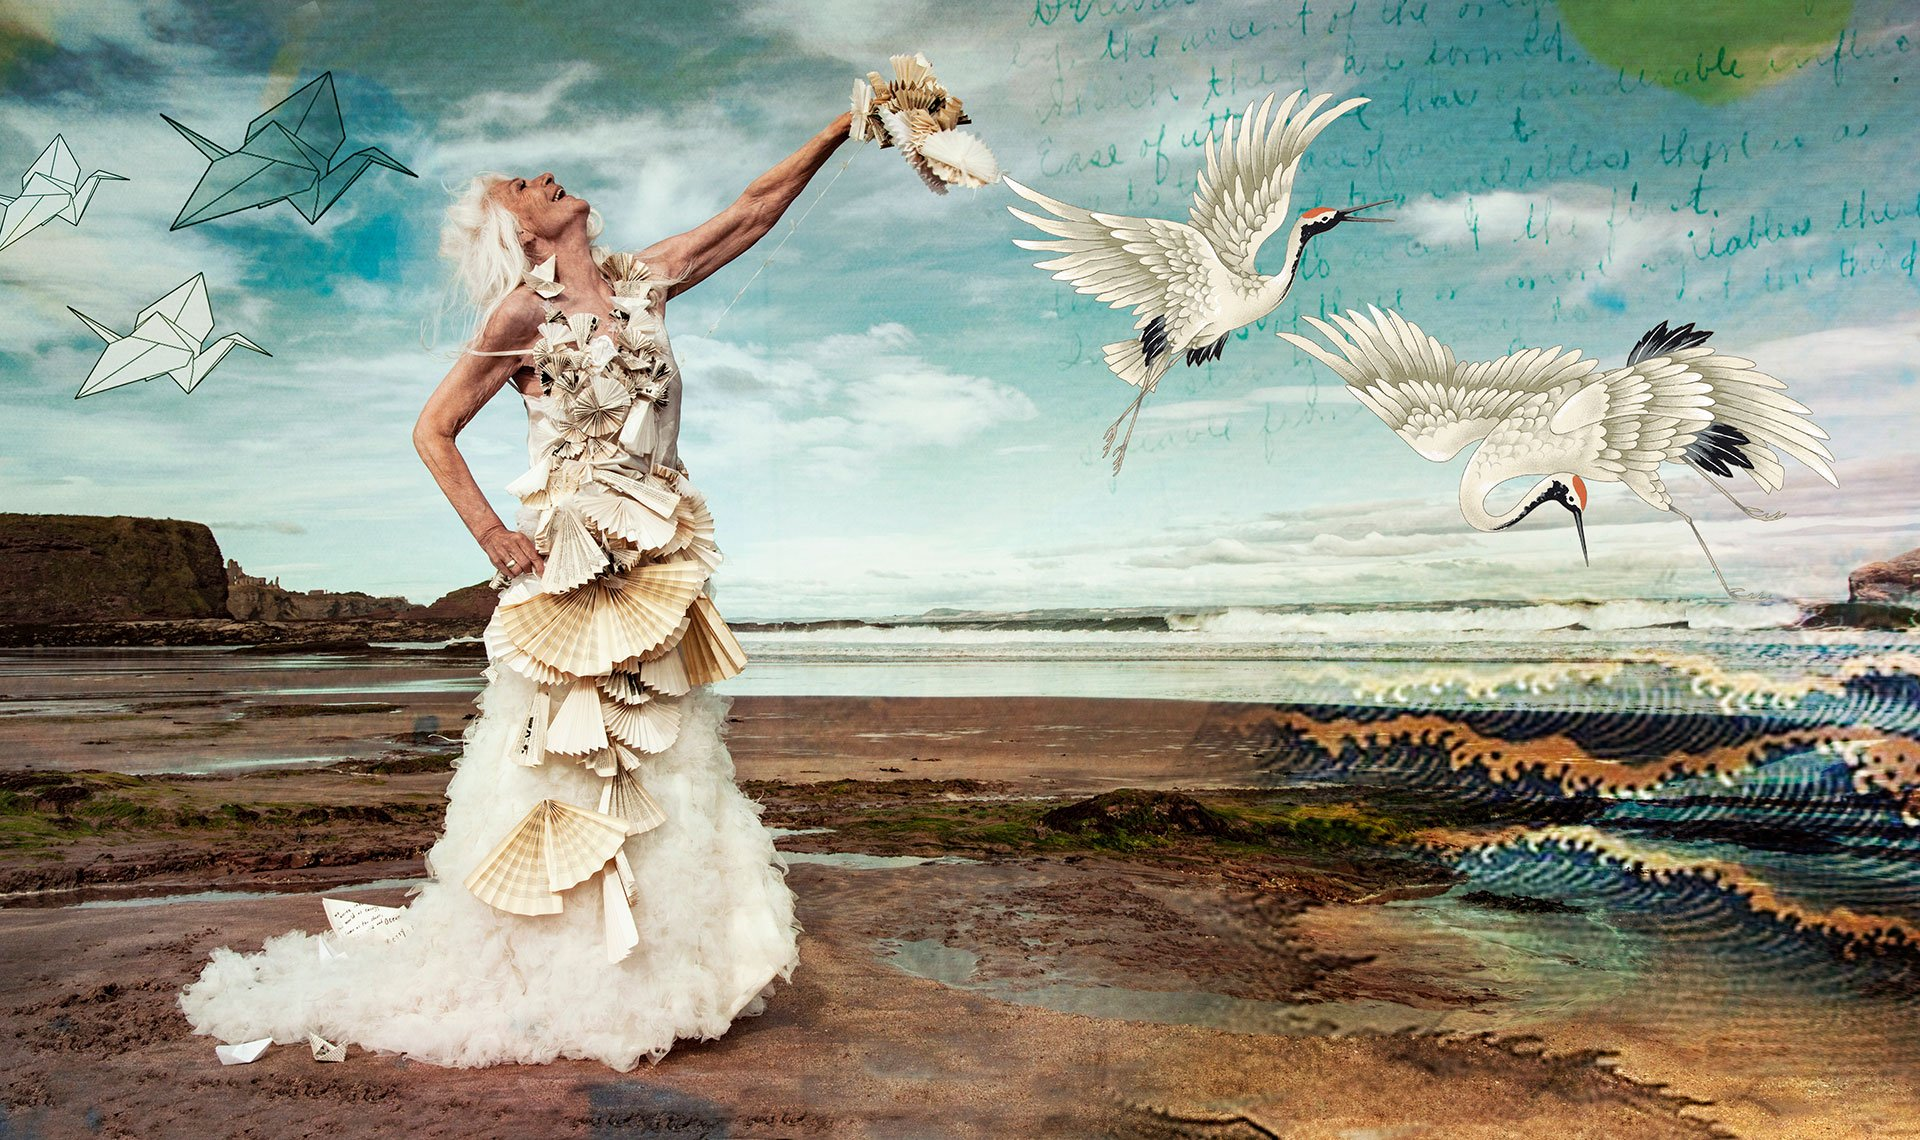 Beautiful older woman with white hair stands on beach wearing a dress made from paper fans surrounded by flying cranes image is inspired from Japanese traditional artworks